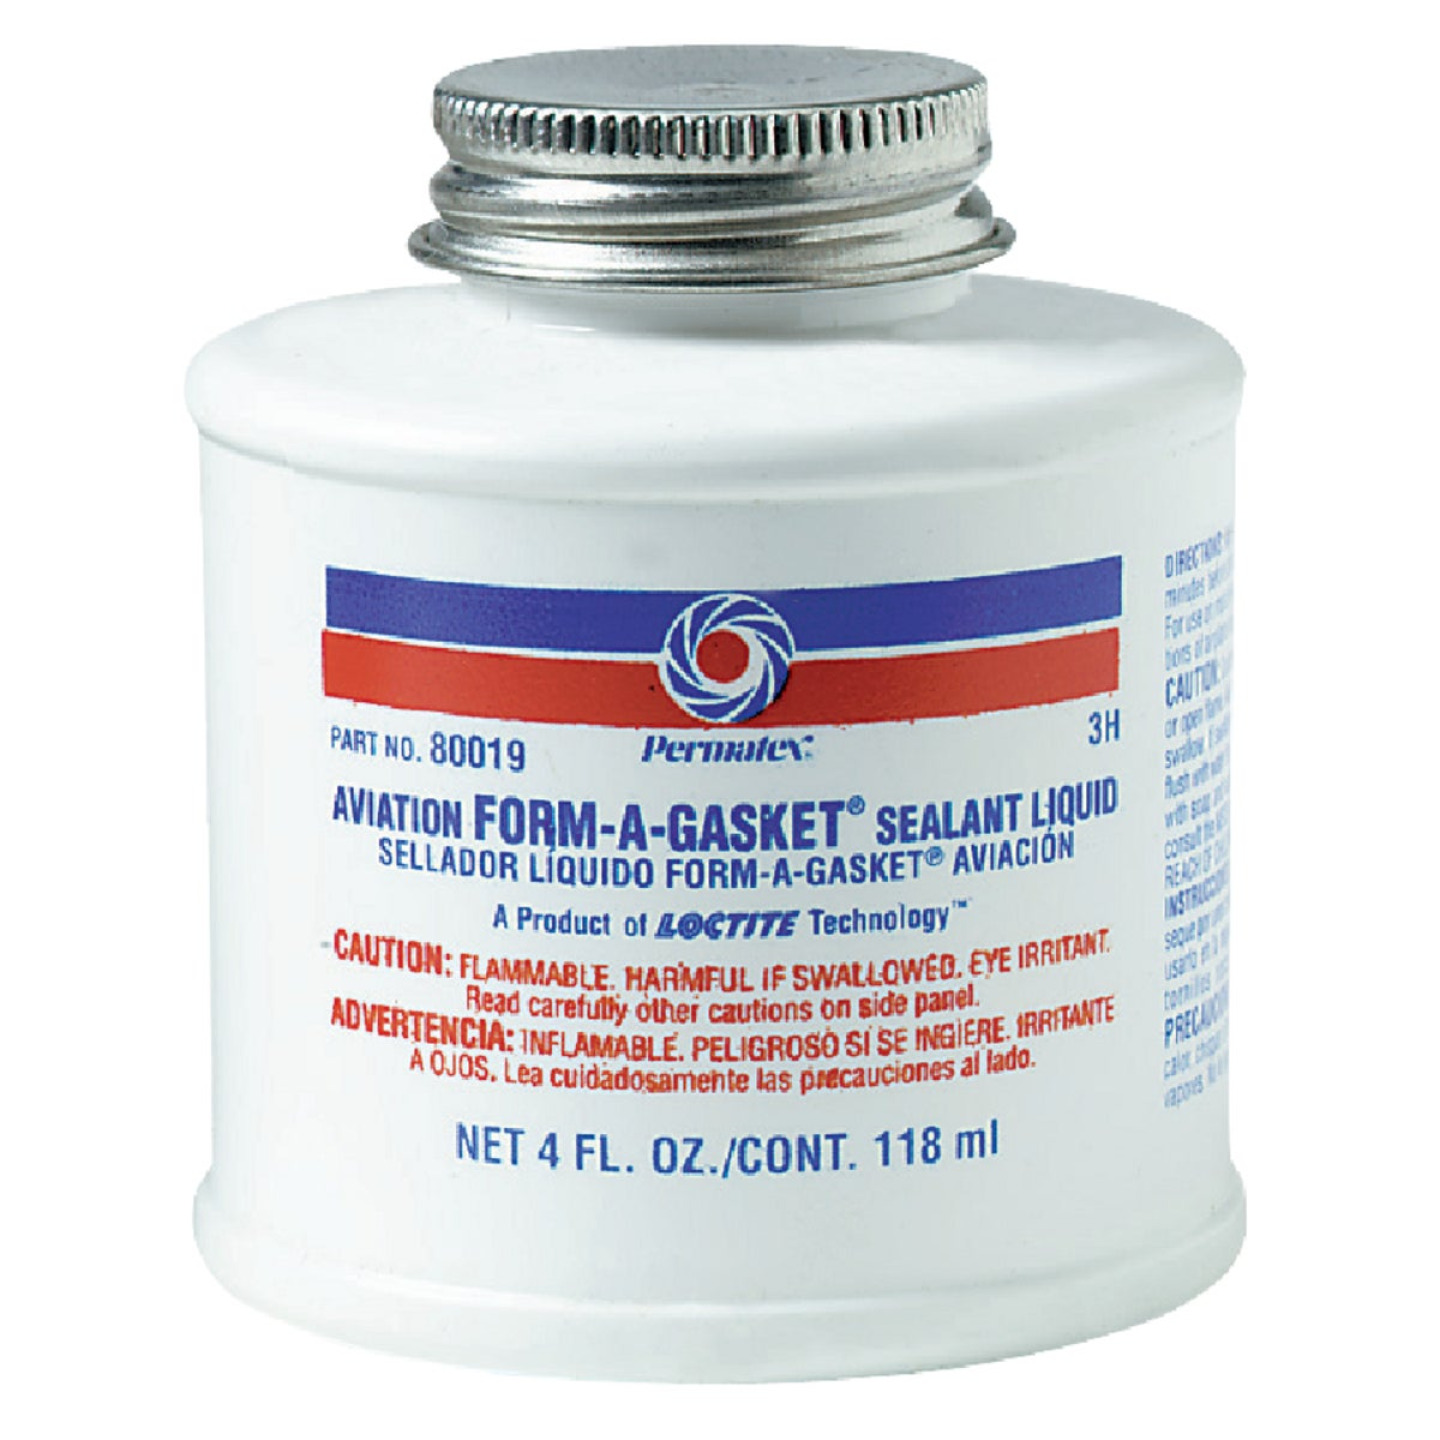 Permatex 4 Oz. Aviation Form-A-Gasket Sealant Image 1